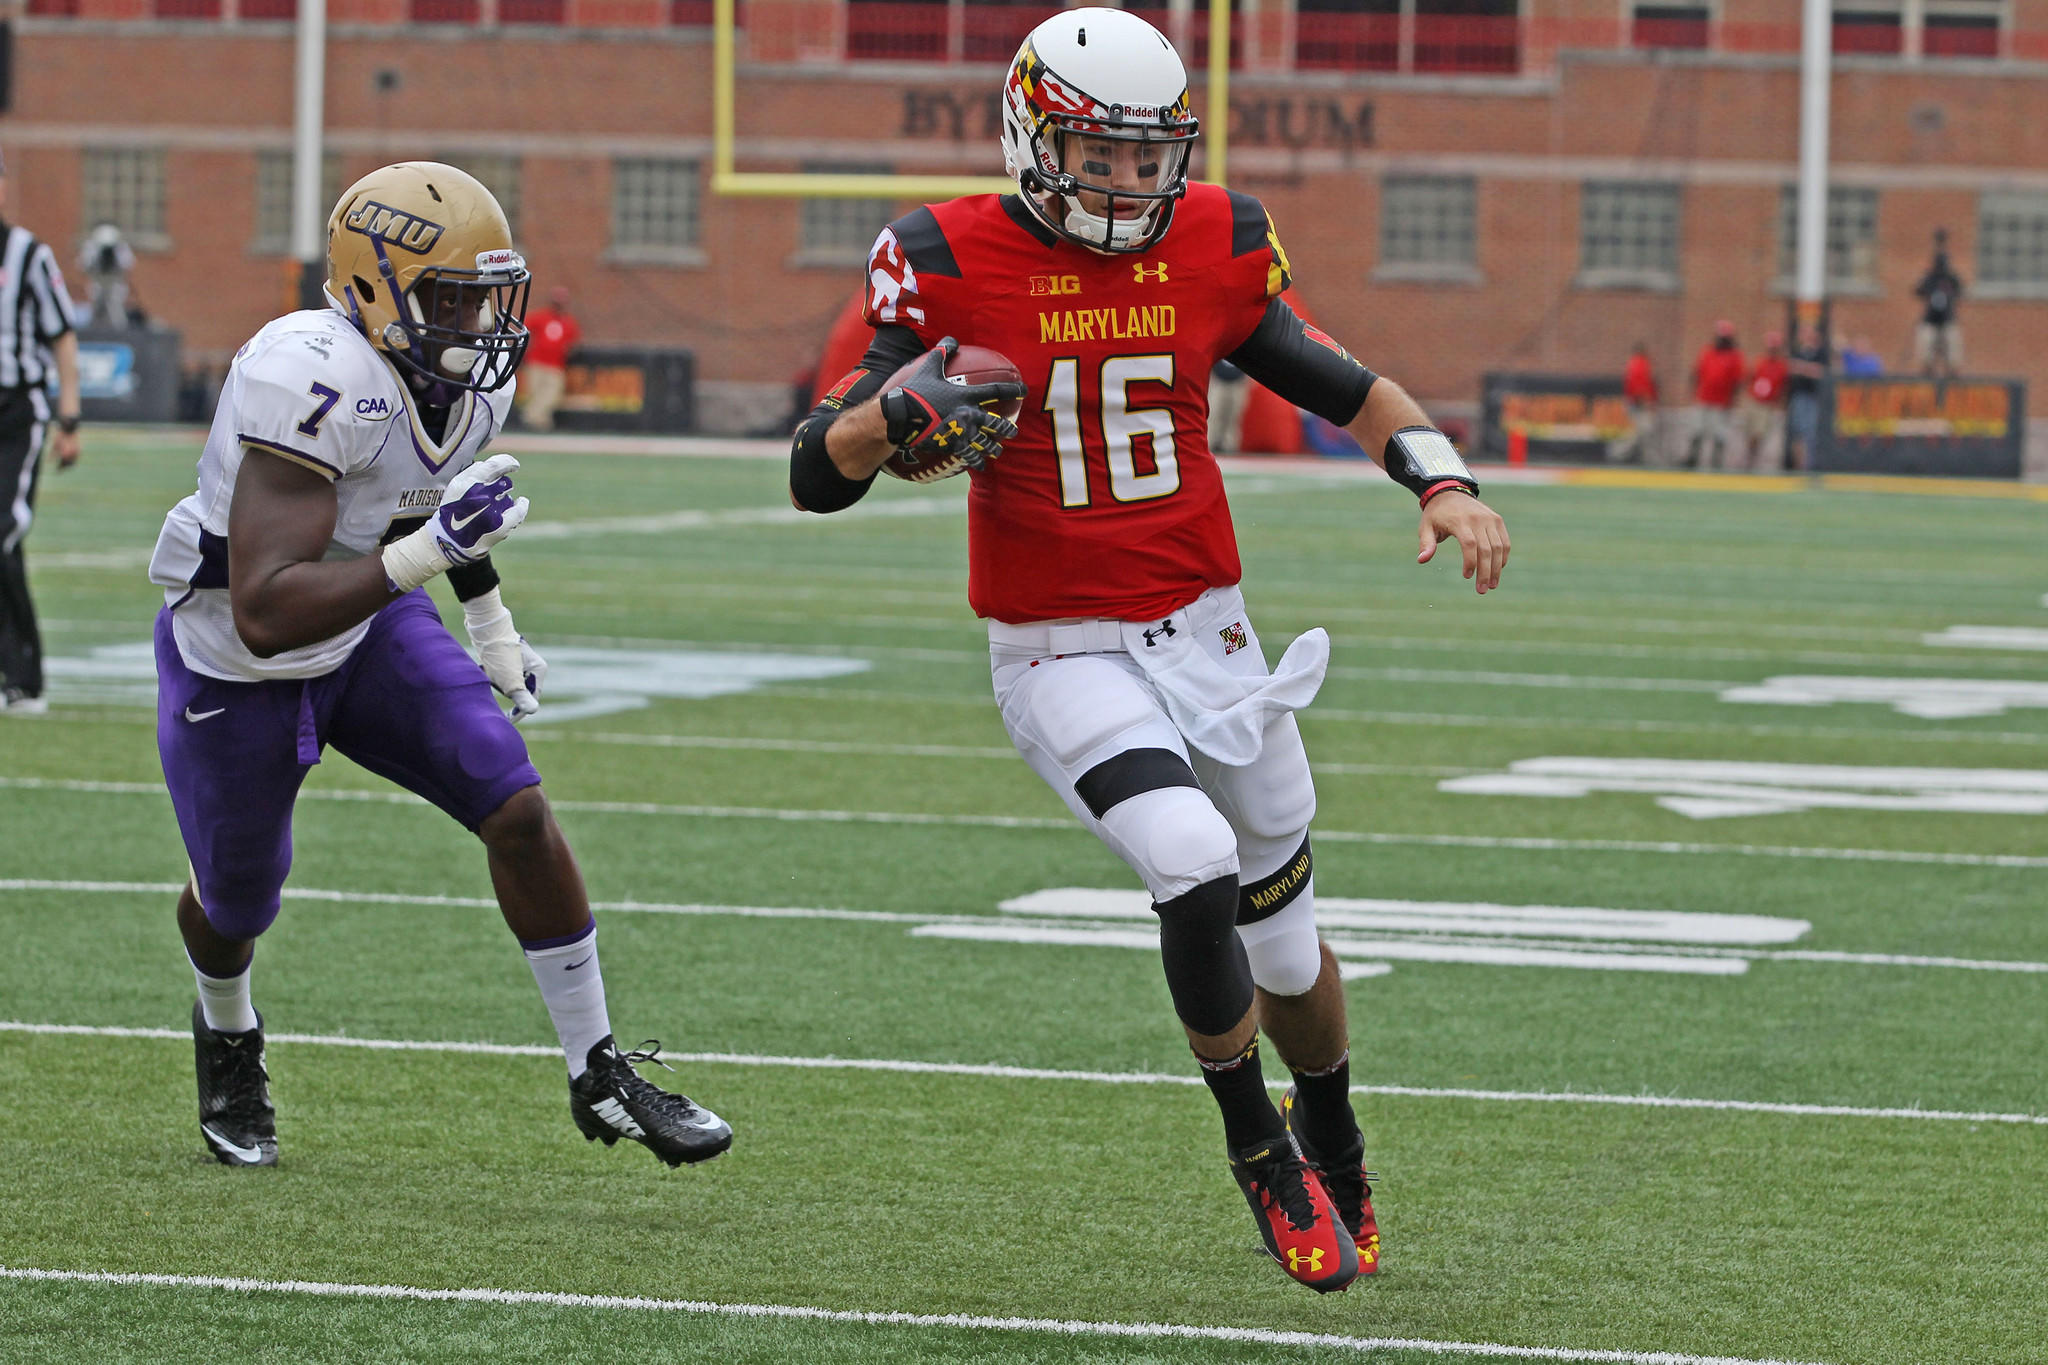 Maryland quarterback C.J. Brown runs past James Madison Dukes linebacker Rhakeem Stallings in the Terps' first game of the season.